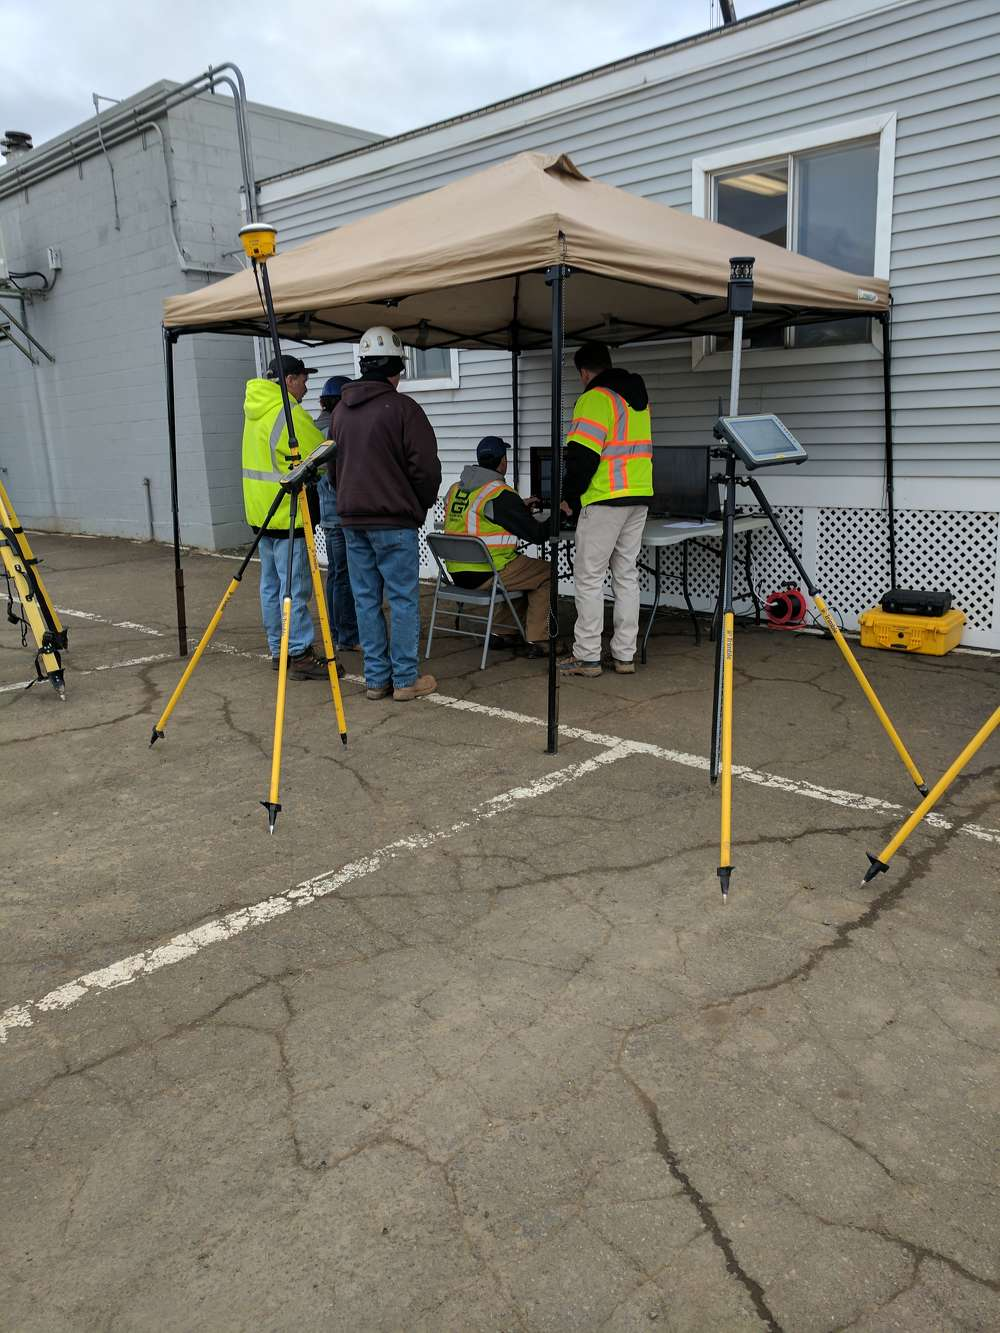 Operators try their hand at the newly released Trimble Earthworks excavator simulator before heading out to the field to test the real thing.